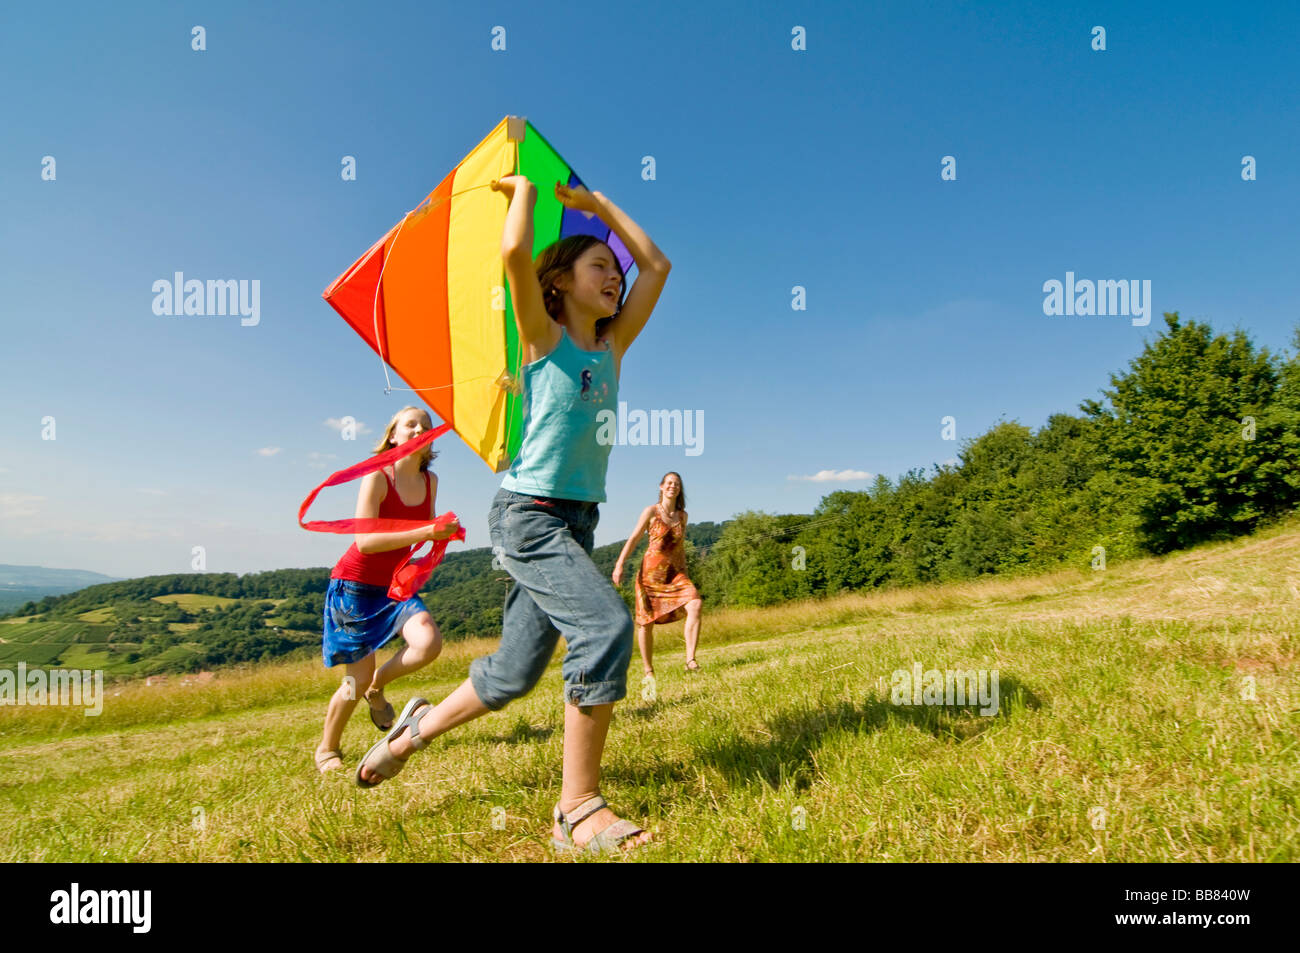 Teenagers running with a kite over a meadow - Stock Image